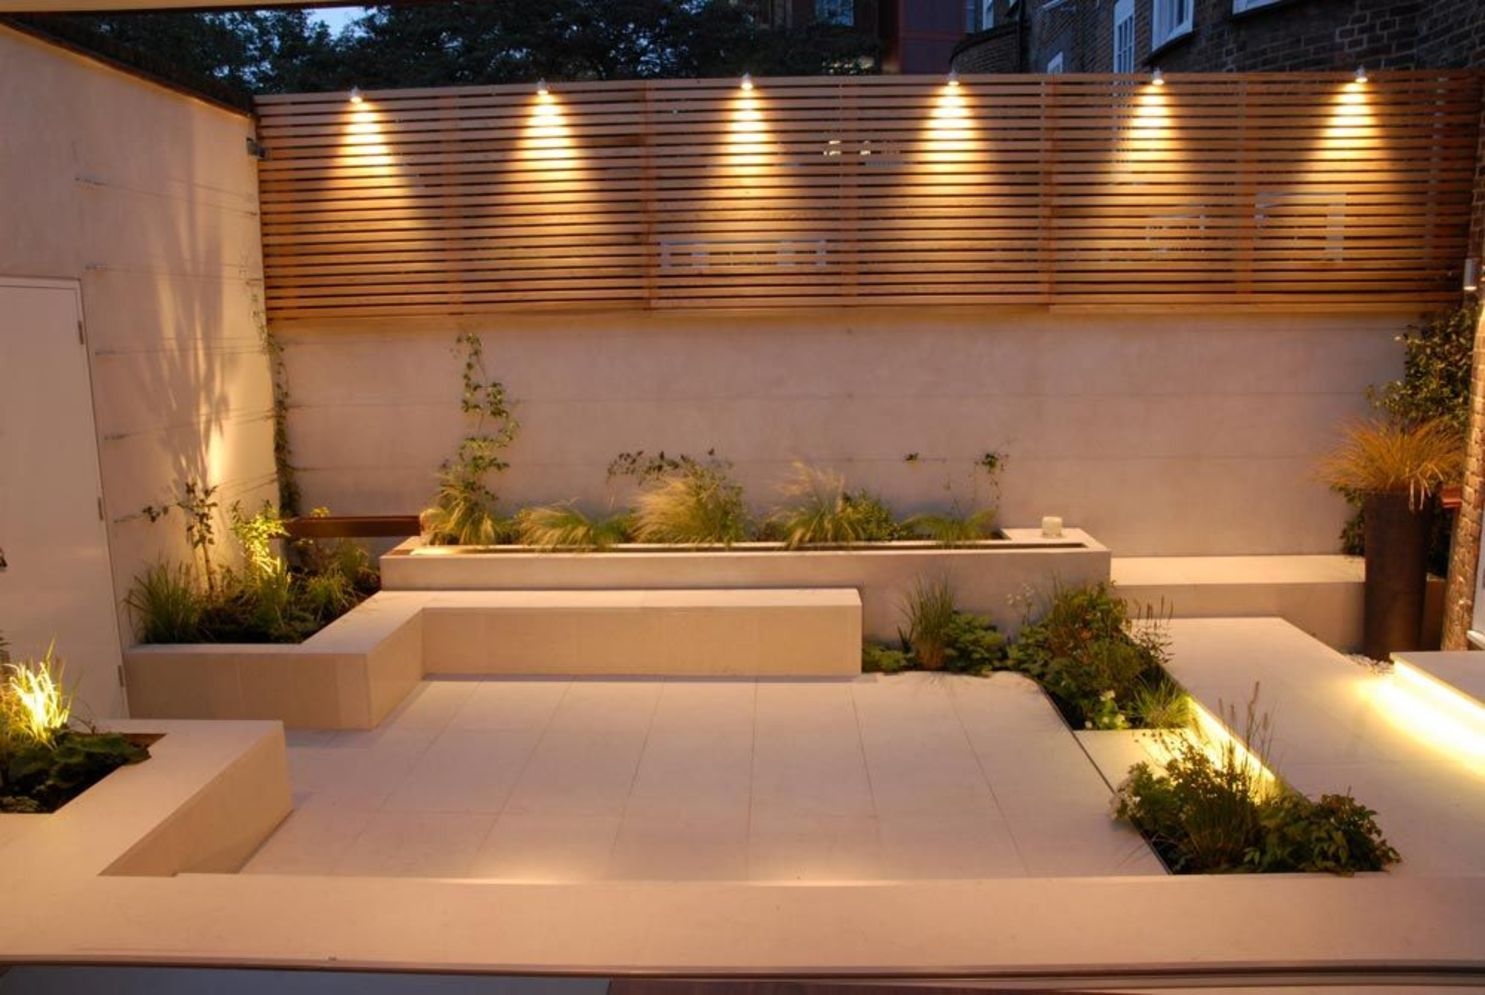 Lavish garden upgrade showing beautiful outdoor light schemes that liven up the landscape view Image 35